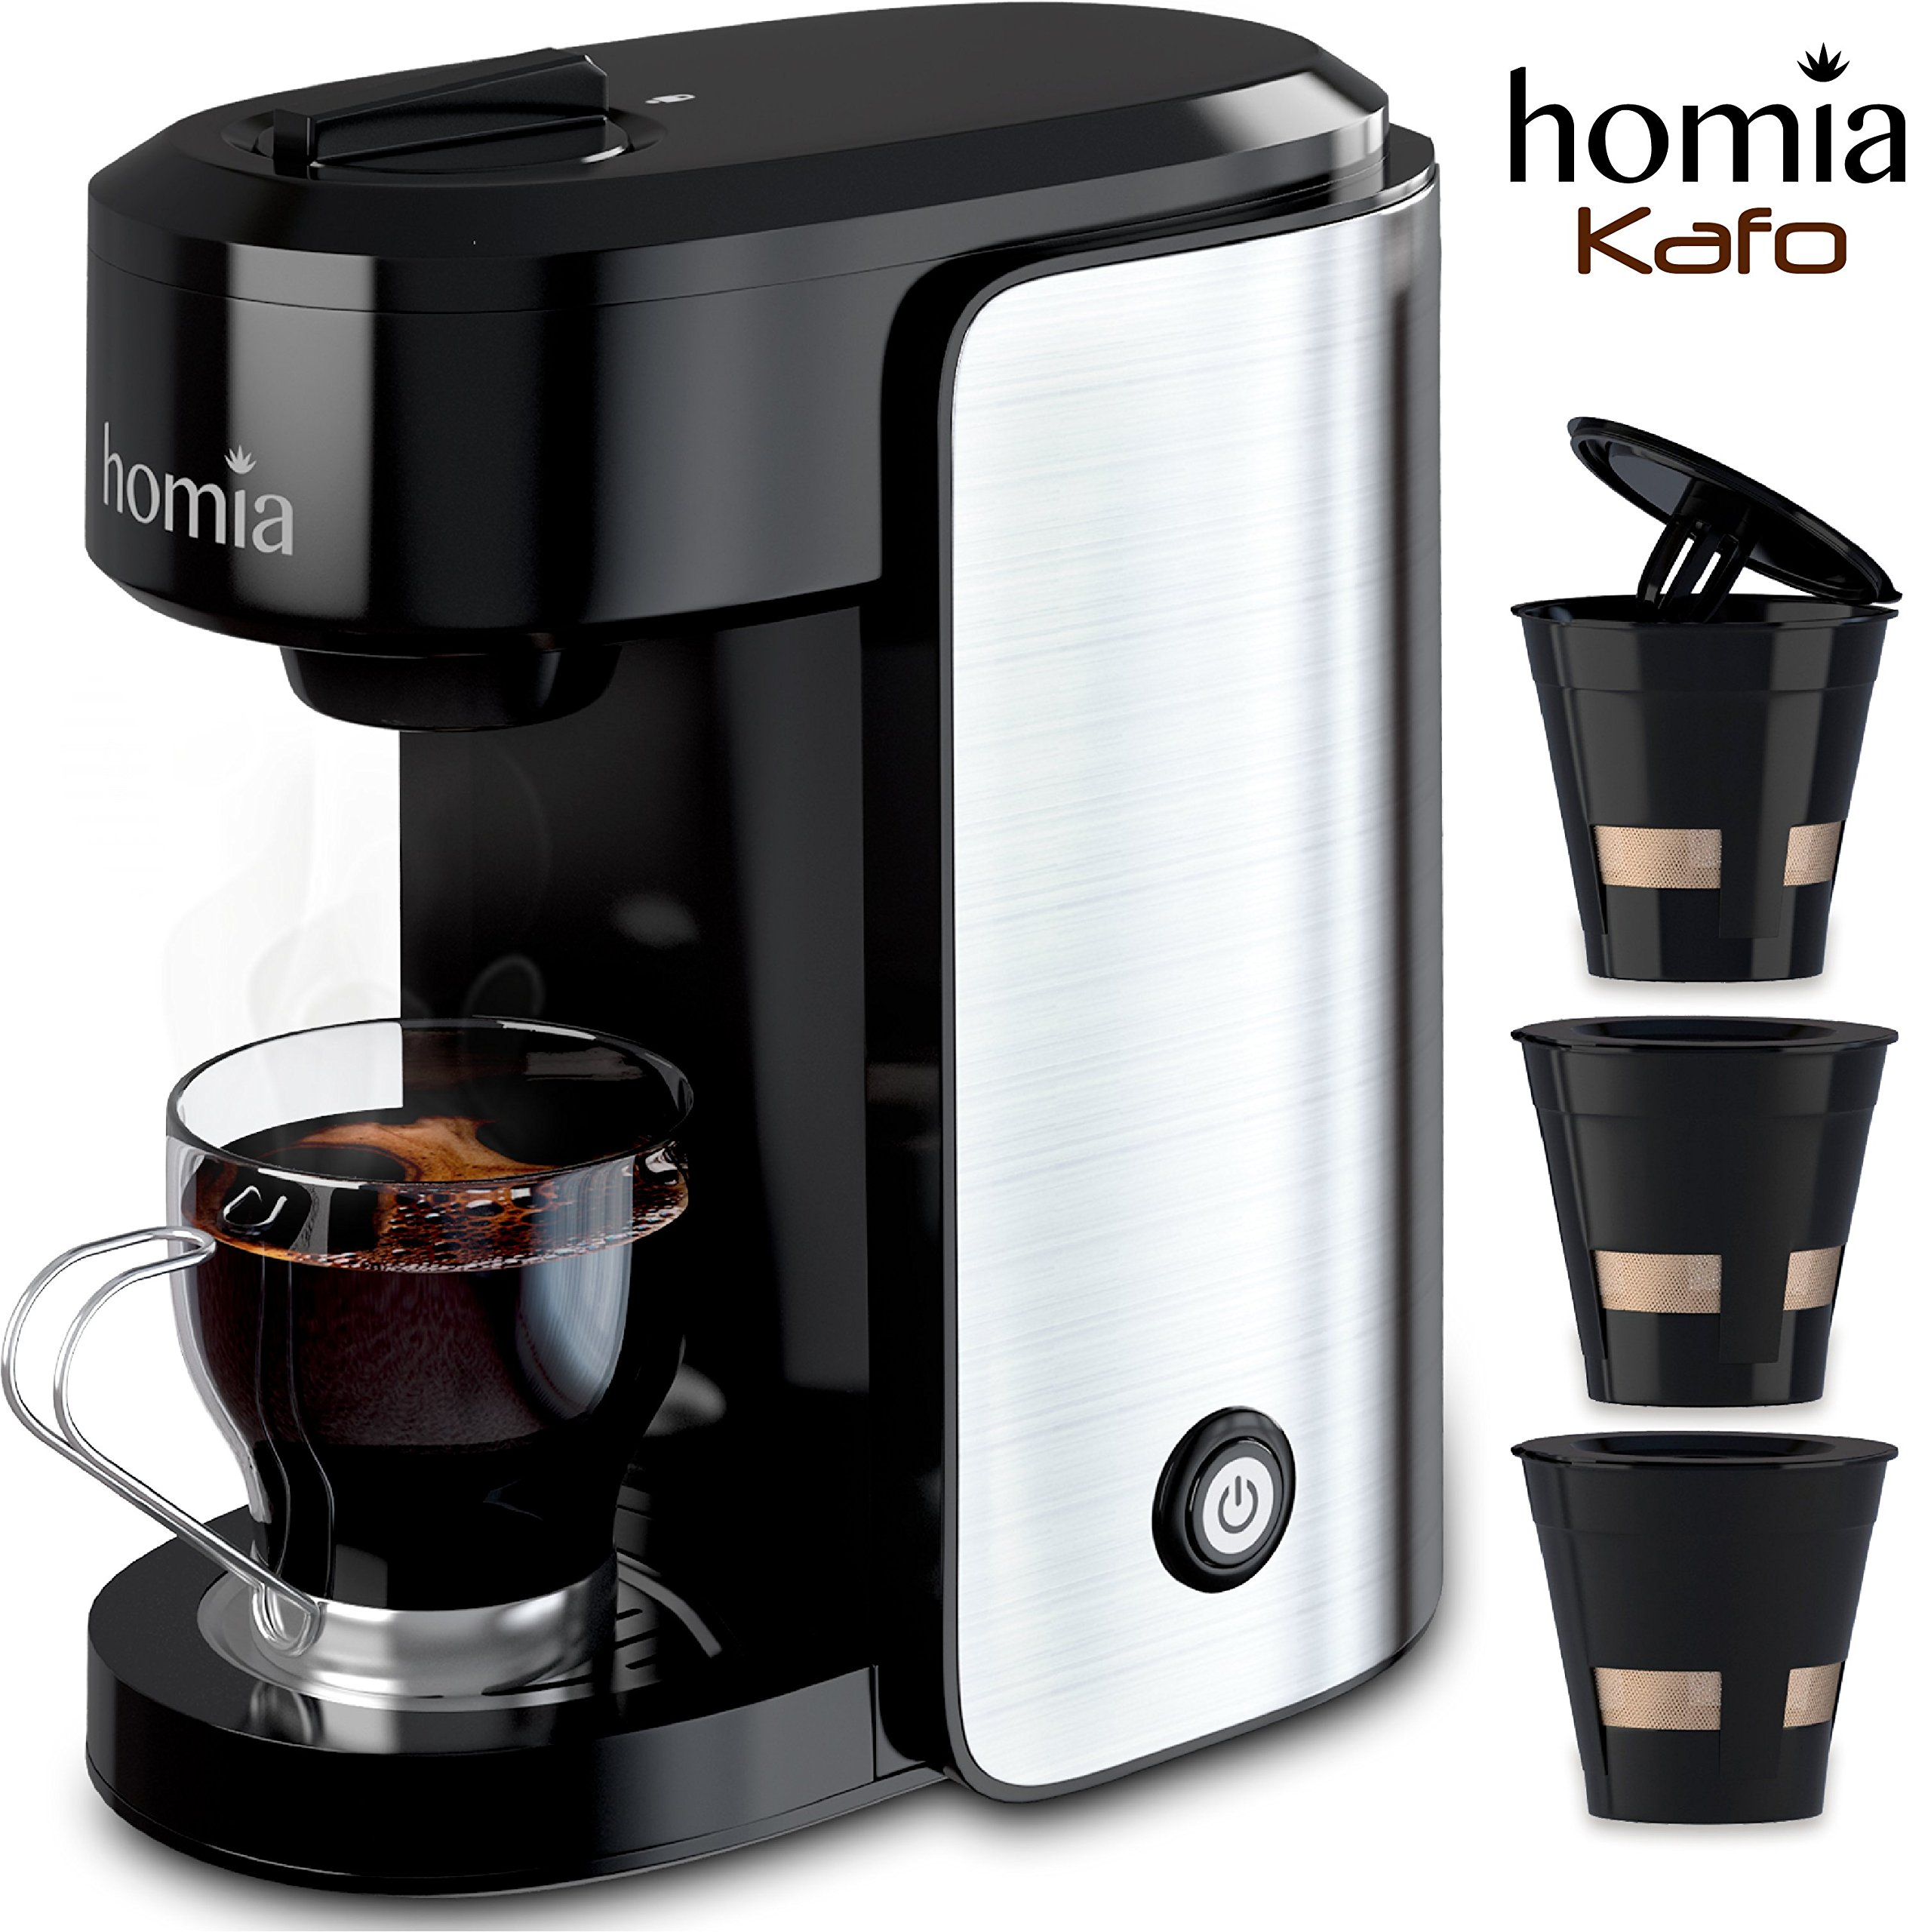 Coffee Maker Machine Single Serve - Electric Brewer for Ground Coffee, K-cup Сompatible, 10 oz (300 ml), 1000W, 3.5 bar Pump, with Reusable Capsules and Automatic Shut-Off, Stainless Steel + Black by homia